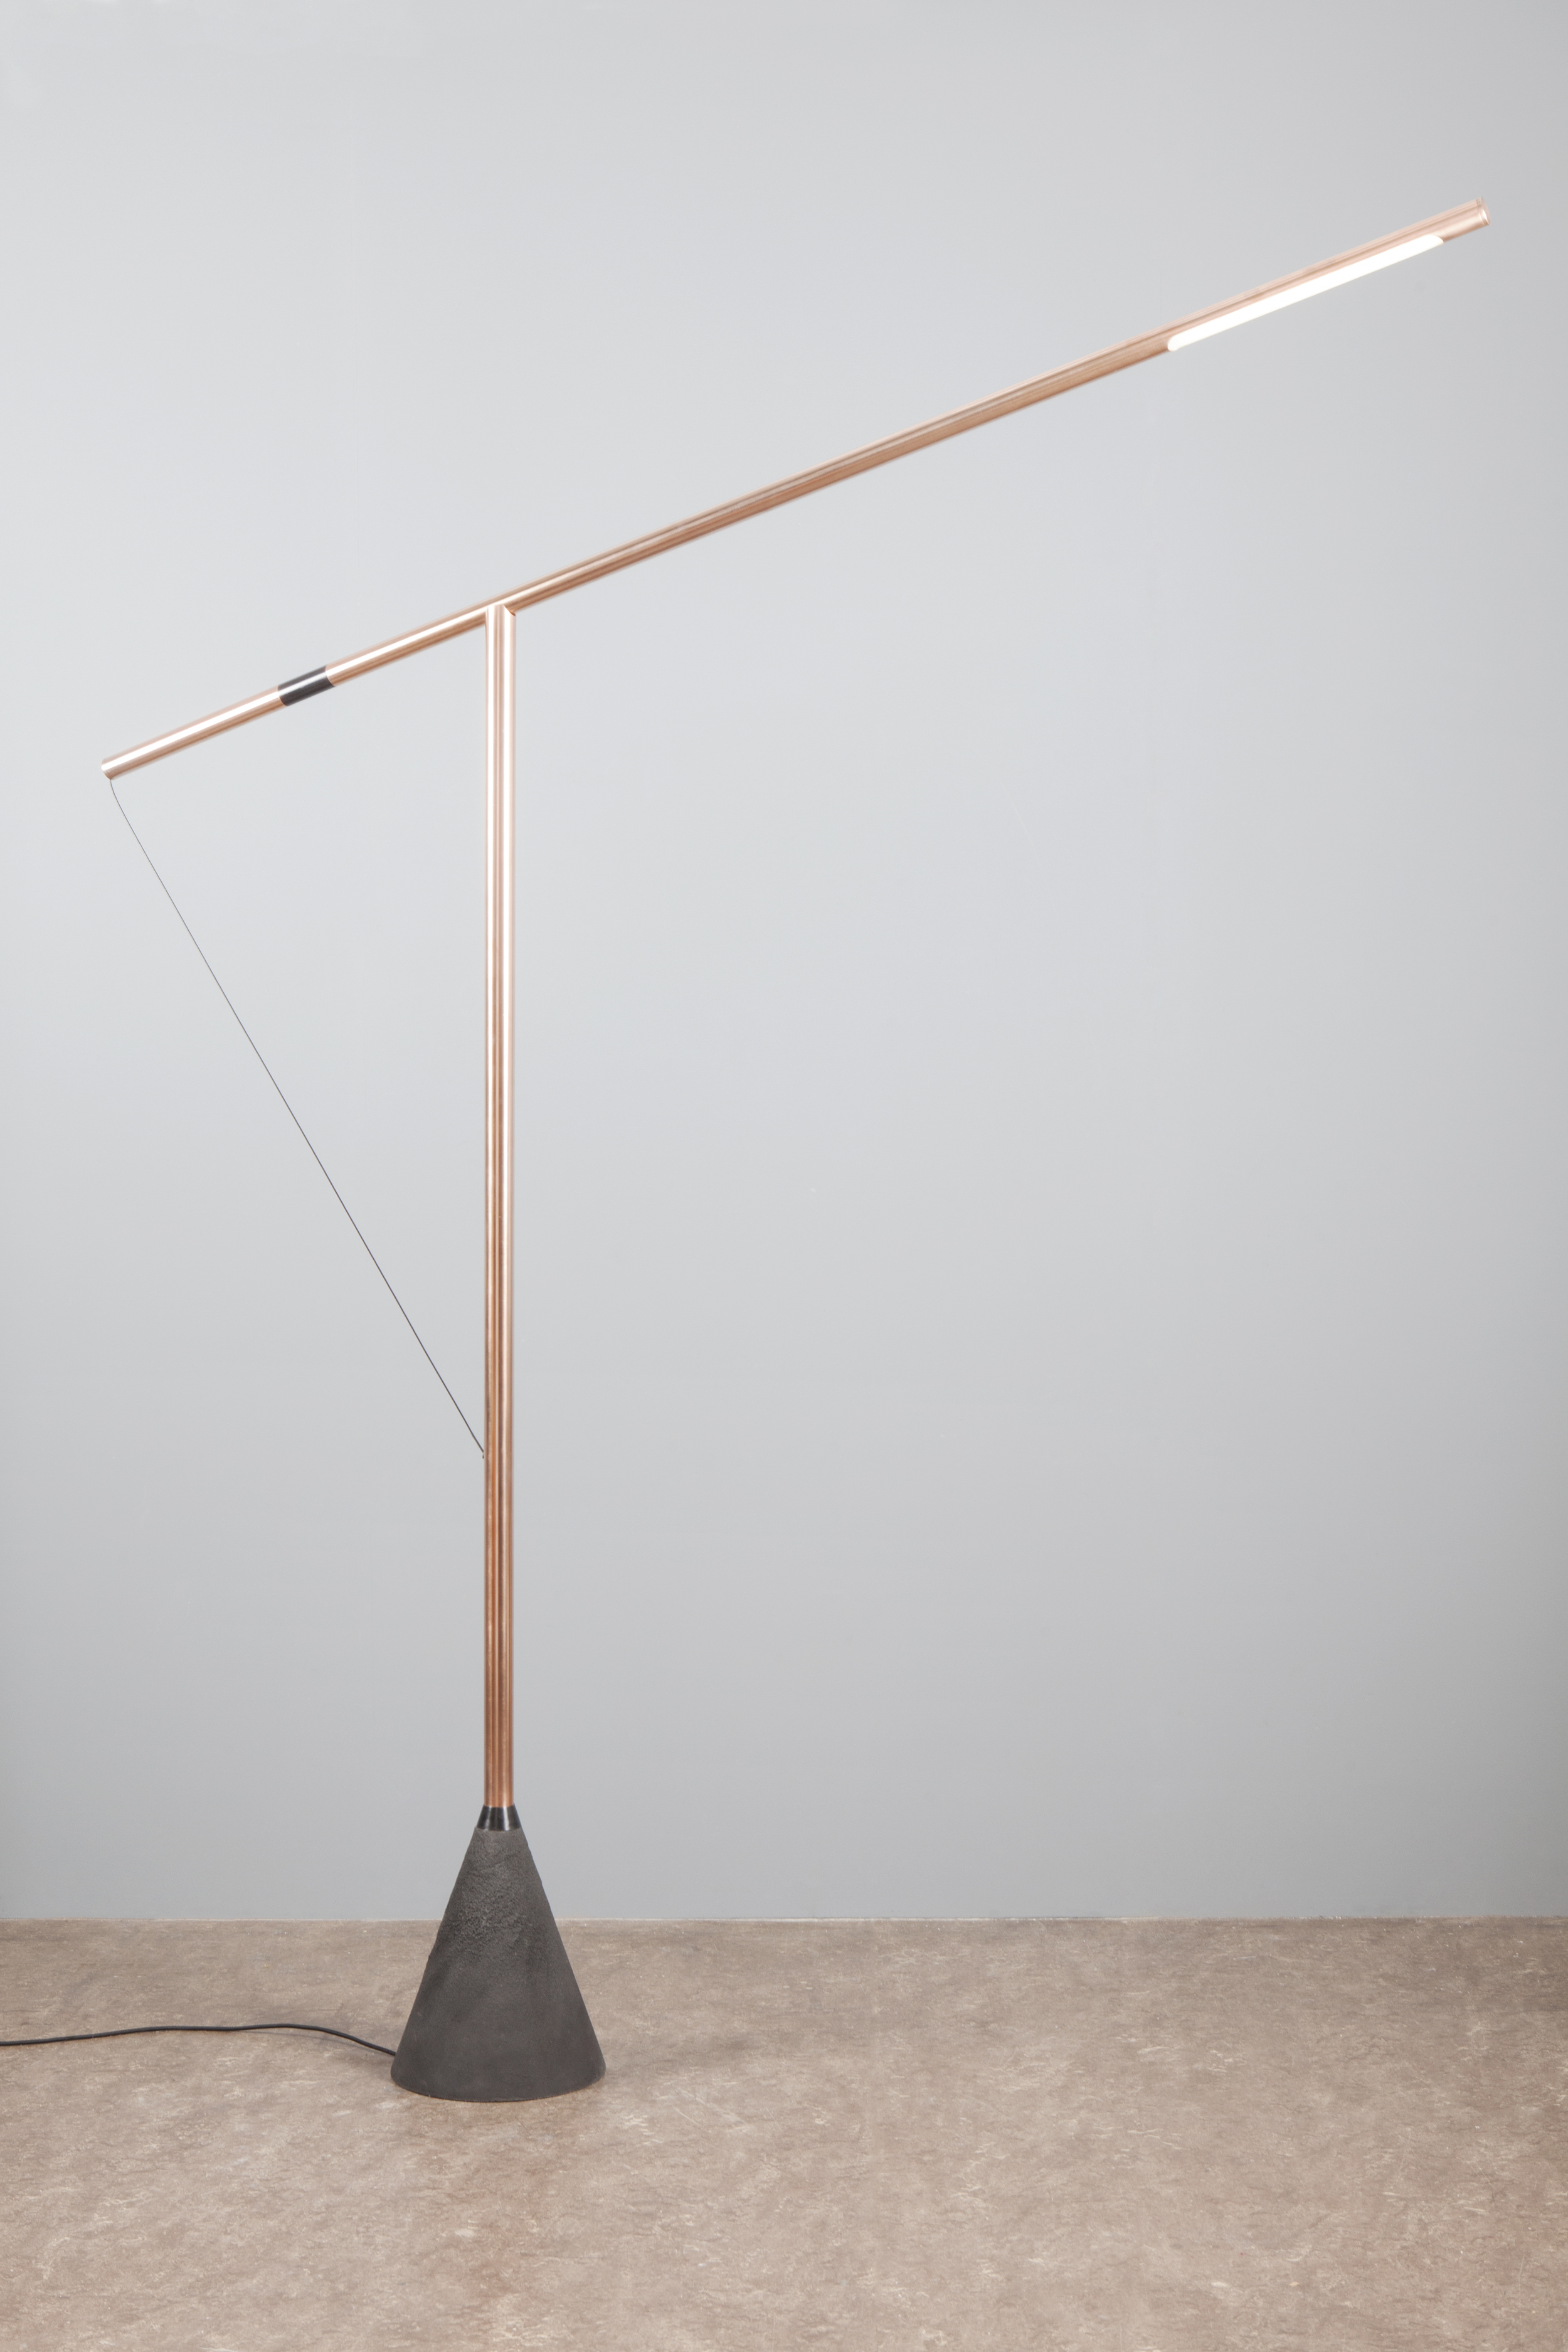 The lamp consists of two posts anchored by a single wire. A copper post containing an LED light source is balanced in a T-formation across another upright post. When the two posts touch, the circuit is completed and the LEDs turn on. The light can be adjusted by simply sliding the horizontal post to the desired position. By sliding the post on the non-conductive segment, the light is switched off.